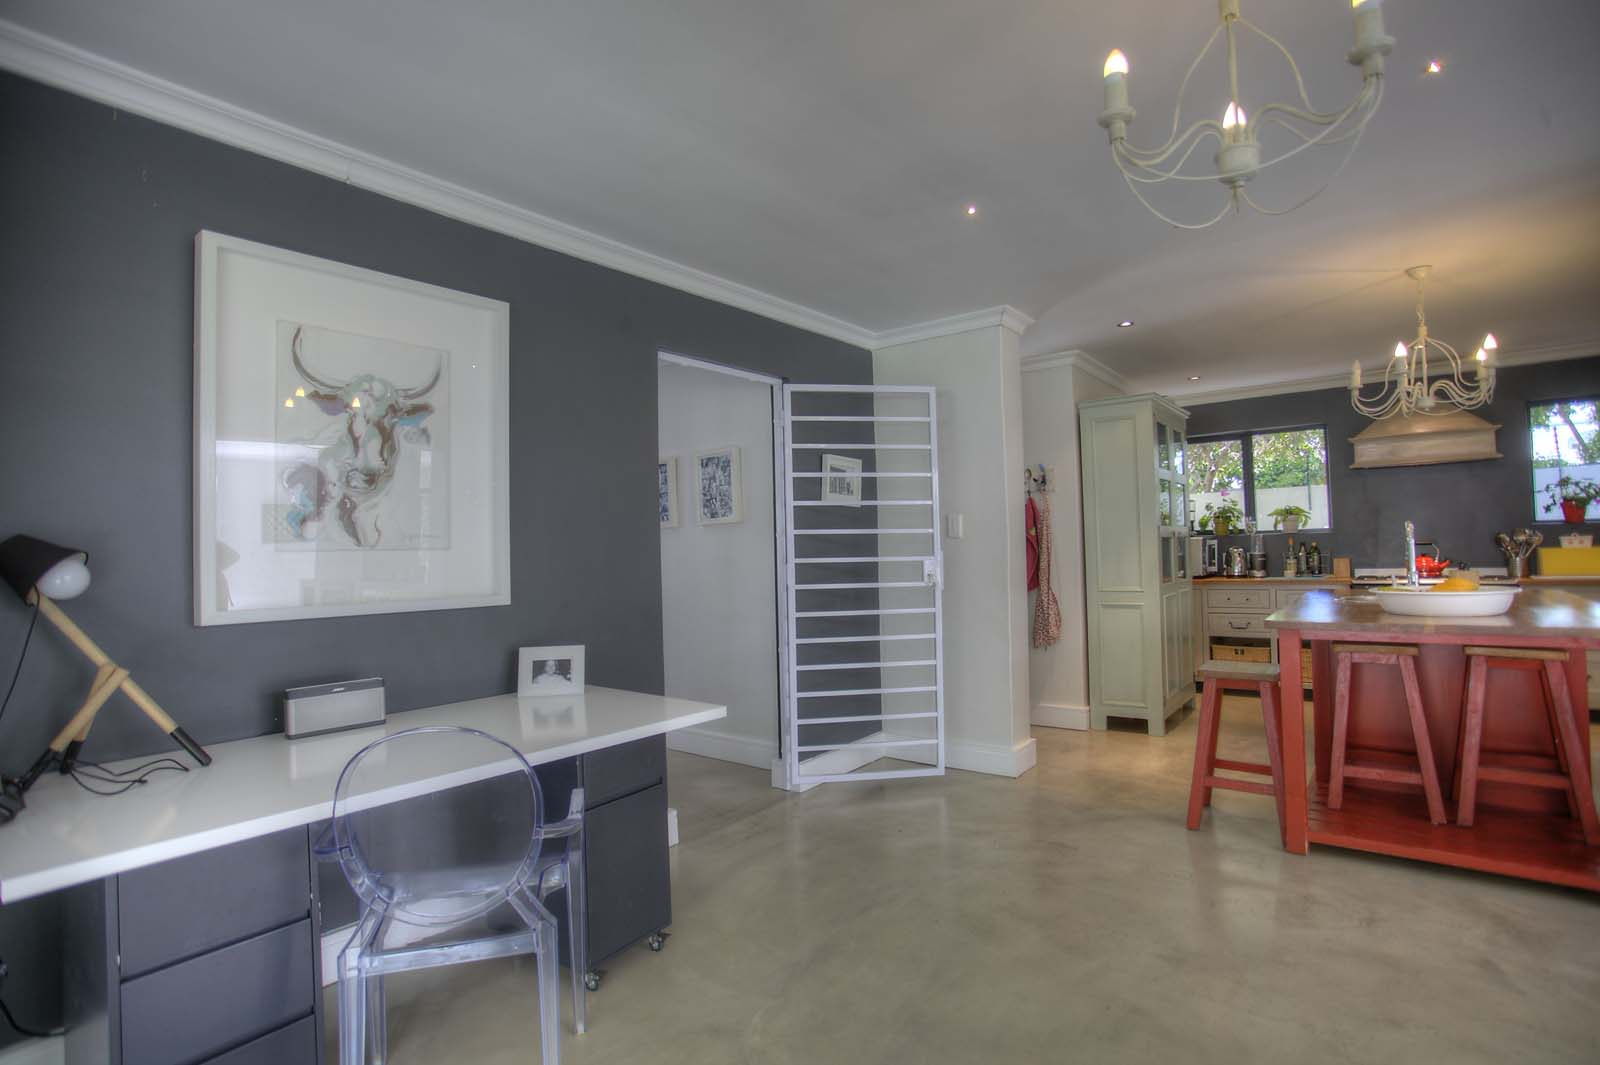 House Accommodation Villa Robertson Cape Town Villas Luxury Accommodation Constantia